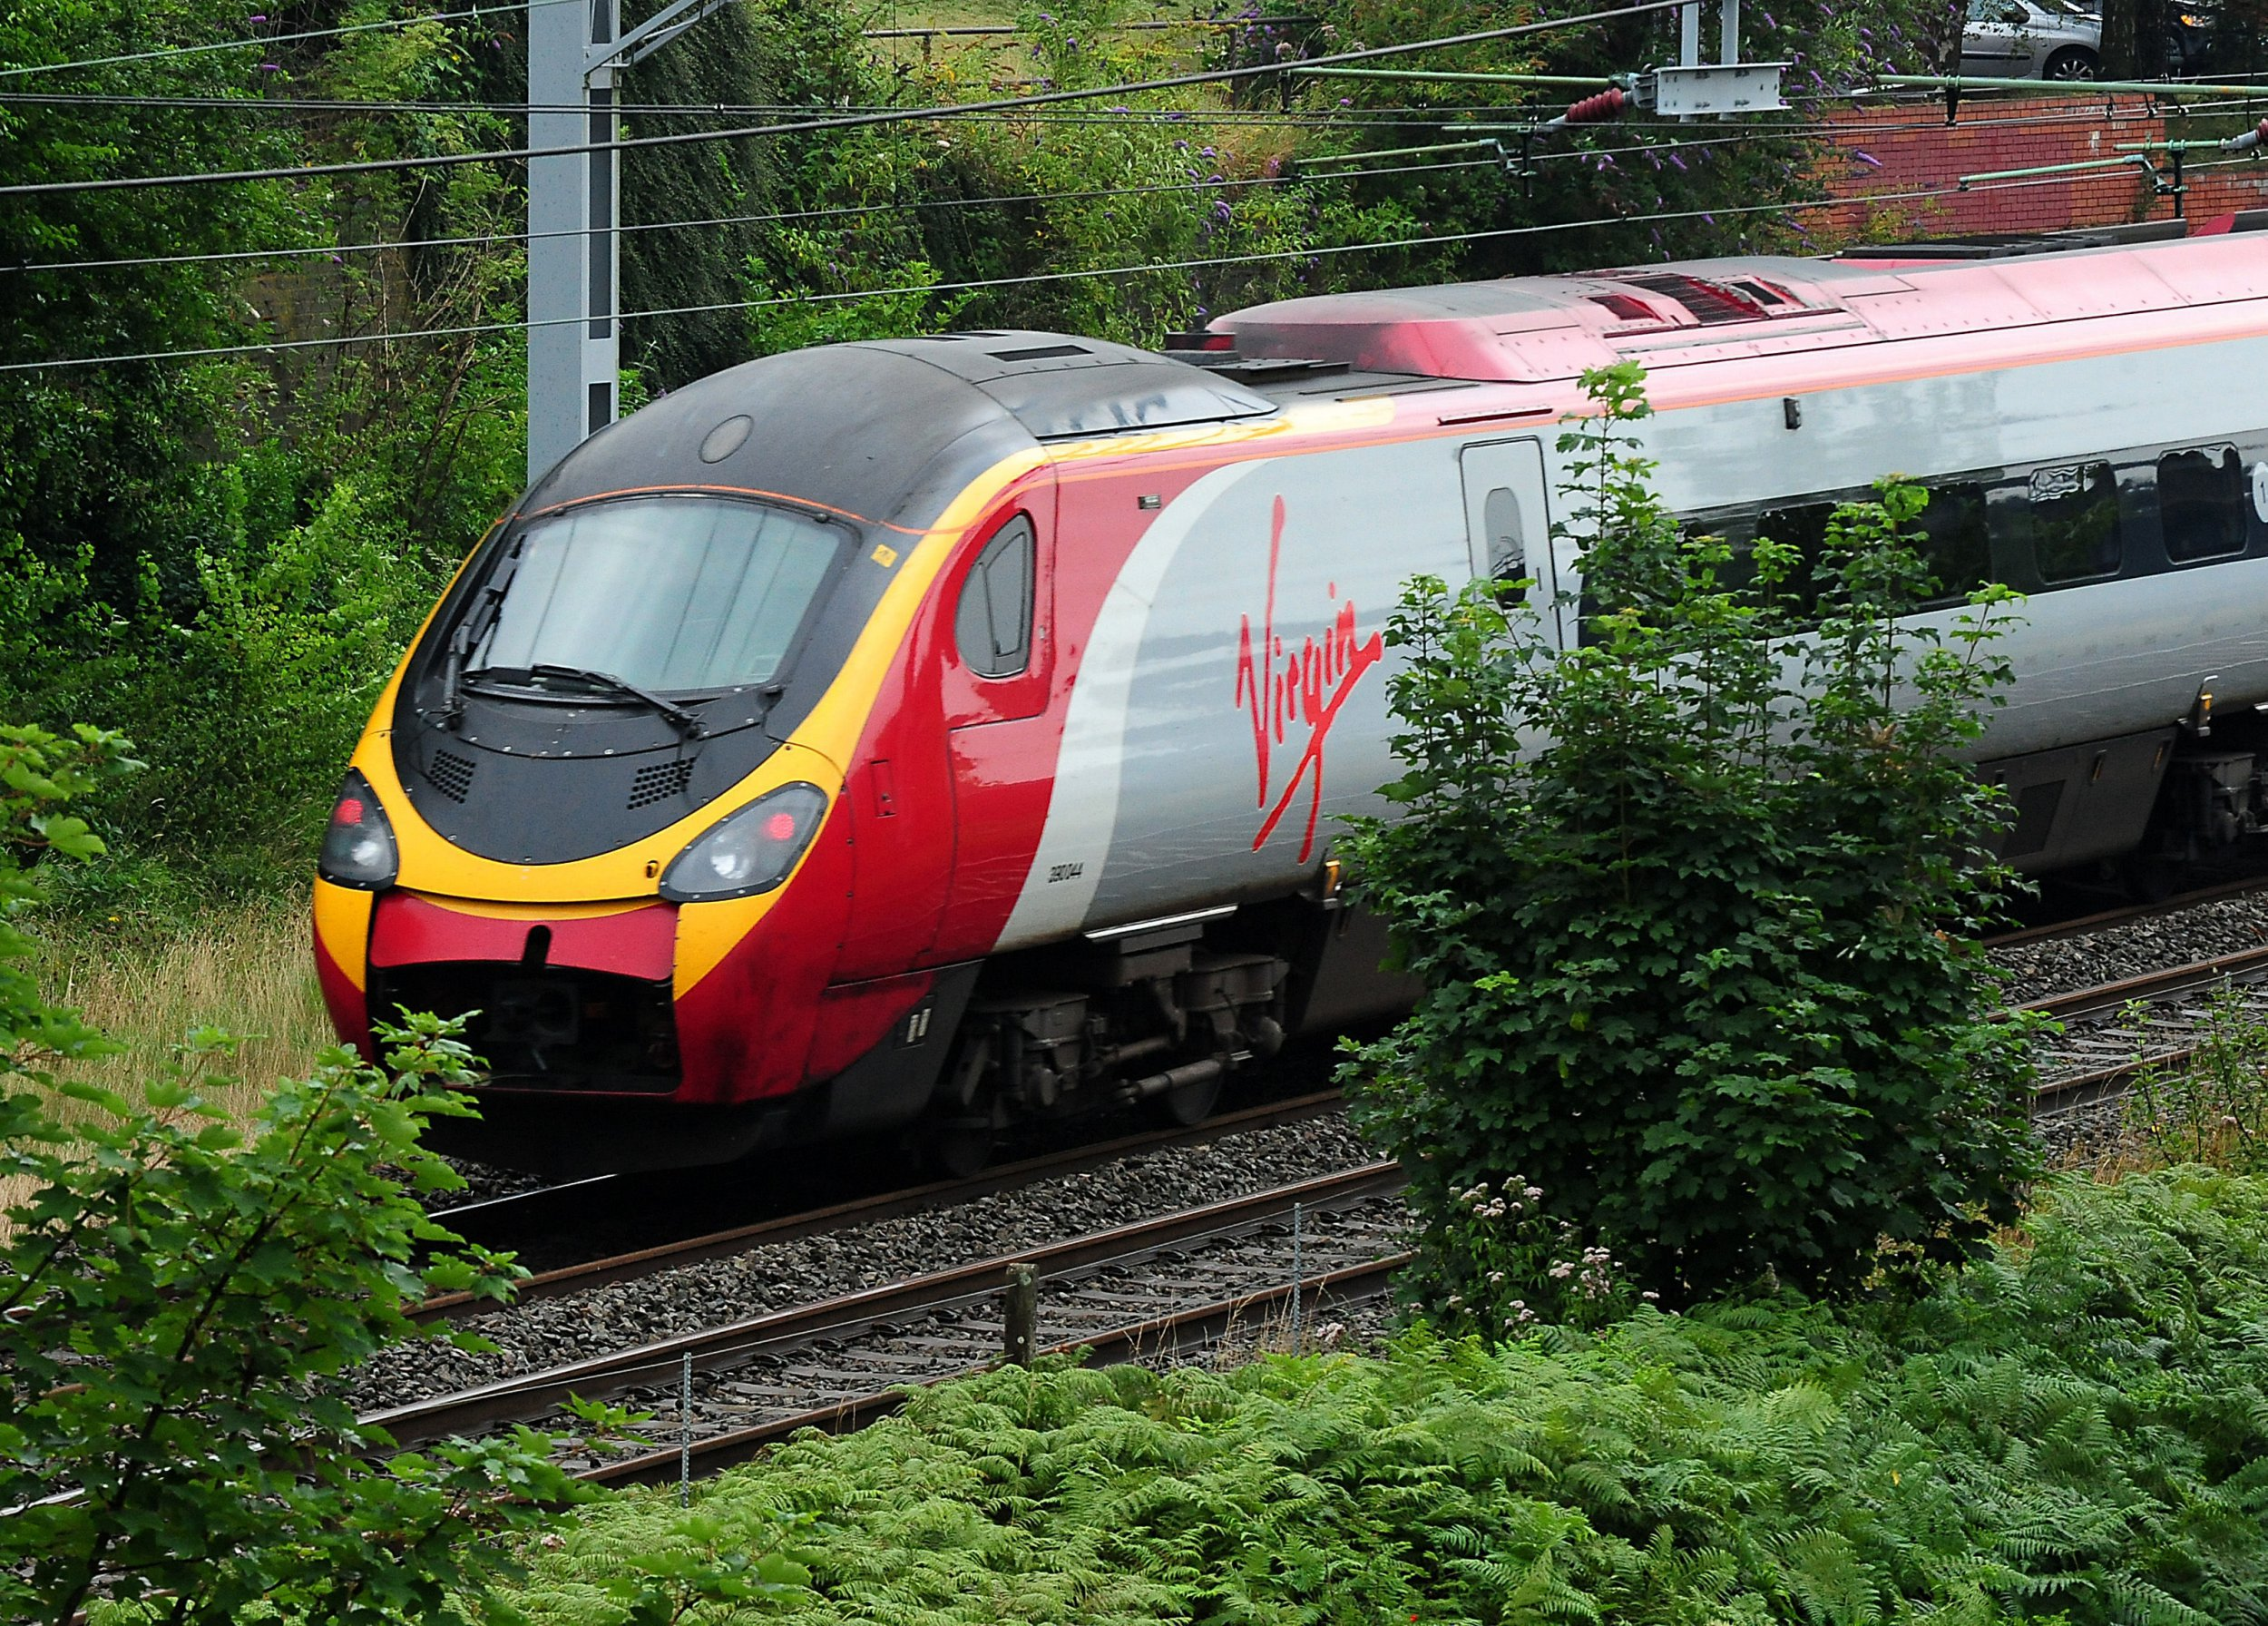 Embargoed to 1300 Thursday November 01 File photo dated 15/08/12 of a Virgin train, as the company has permanently scrapped its Friday afternoon peak restrictions from London Euston to ease overcrowding and enable weekend getaways to start earlier. PRESS ASSOCIATION Photo. Issue date: Thursday November 1, 2018. The huge difference in many peak and off-peak fares previously led to huge demand for the first Friday night off-peak trains at around 7pm. See PA story RAIL Virgin. Photo credit should read: Rui Vieira/PA Wire